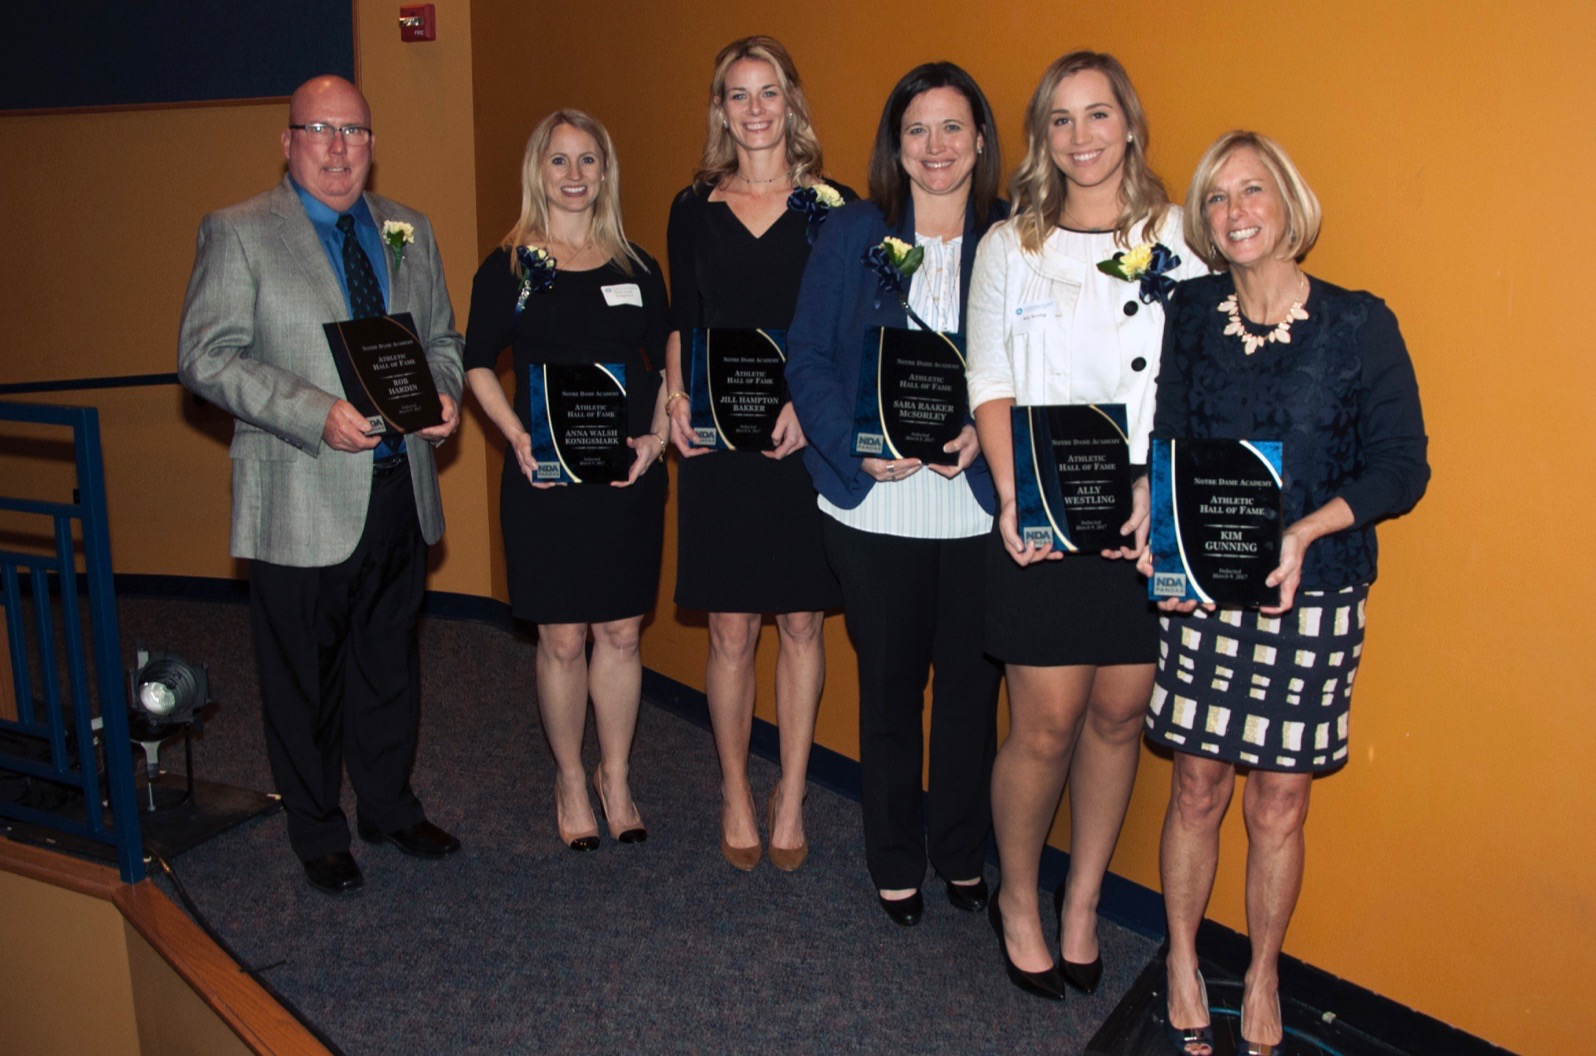 All 2017 Athletics Hall of Fame Recipients at the Notre Dame Academy catholic all-girls school in Covington, Northern Kentucky.